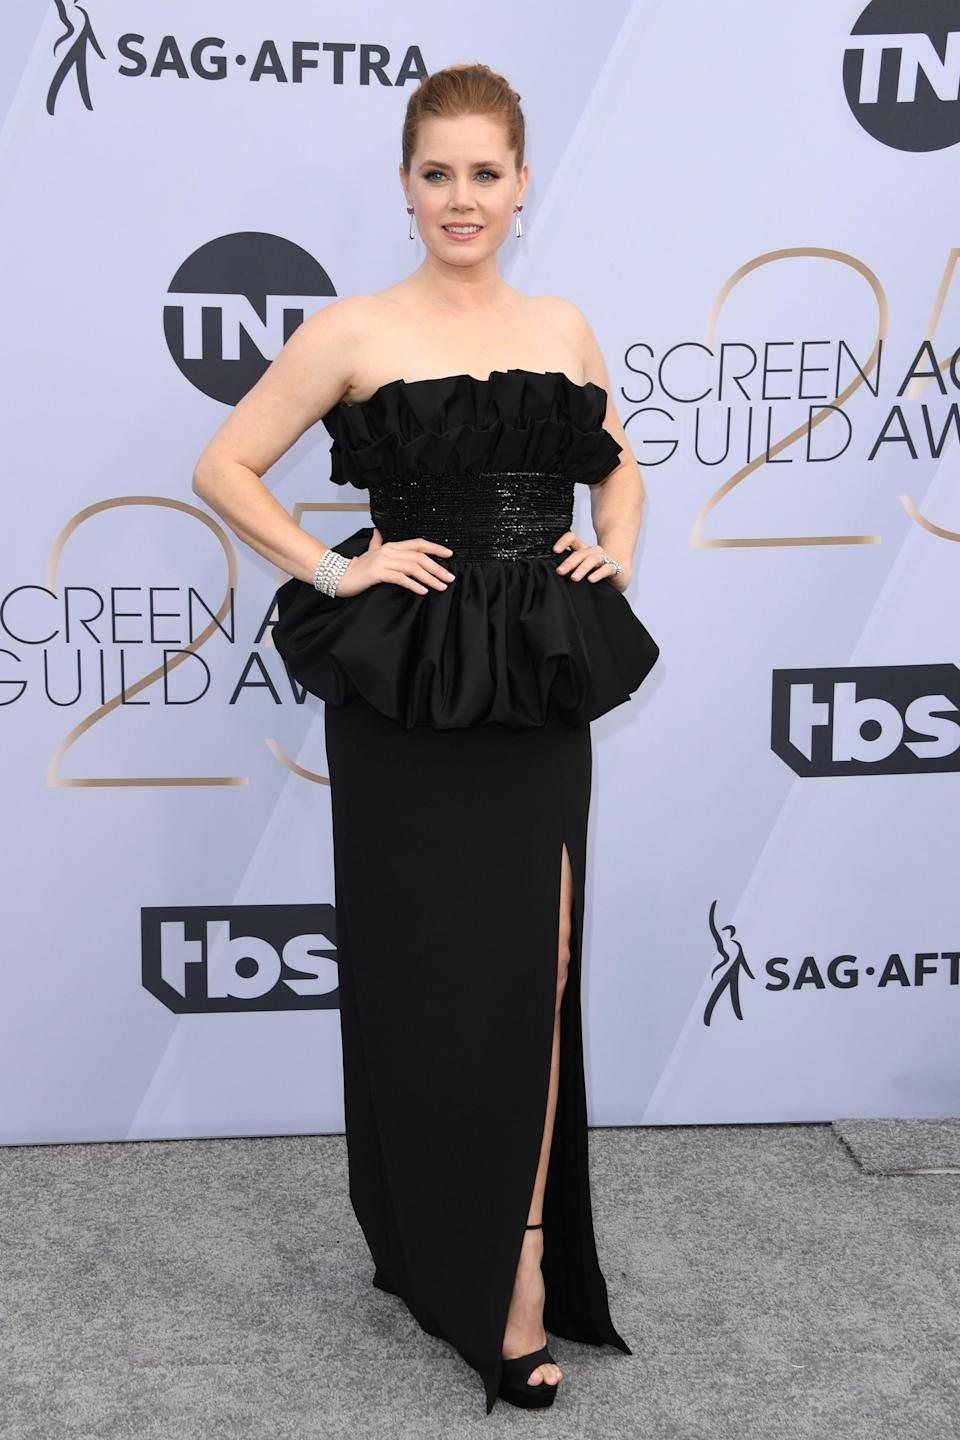 <p>Wearing a black ruffled gown with a slit by Celine by Heidi Slimane with Cartier jewels and Jimmy Choo heels.</p>